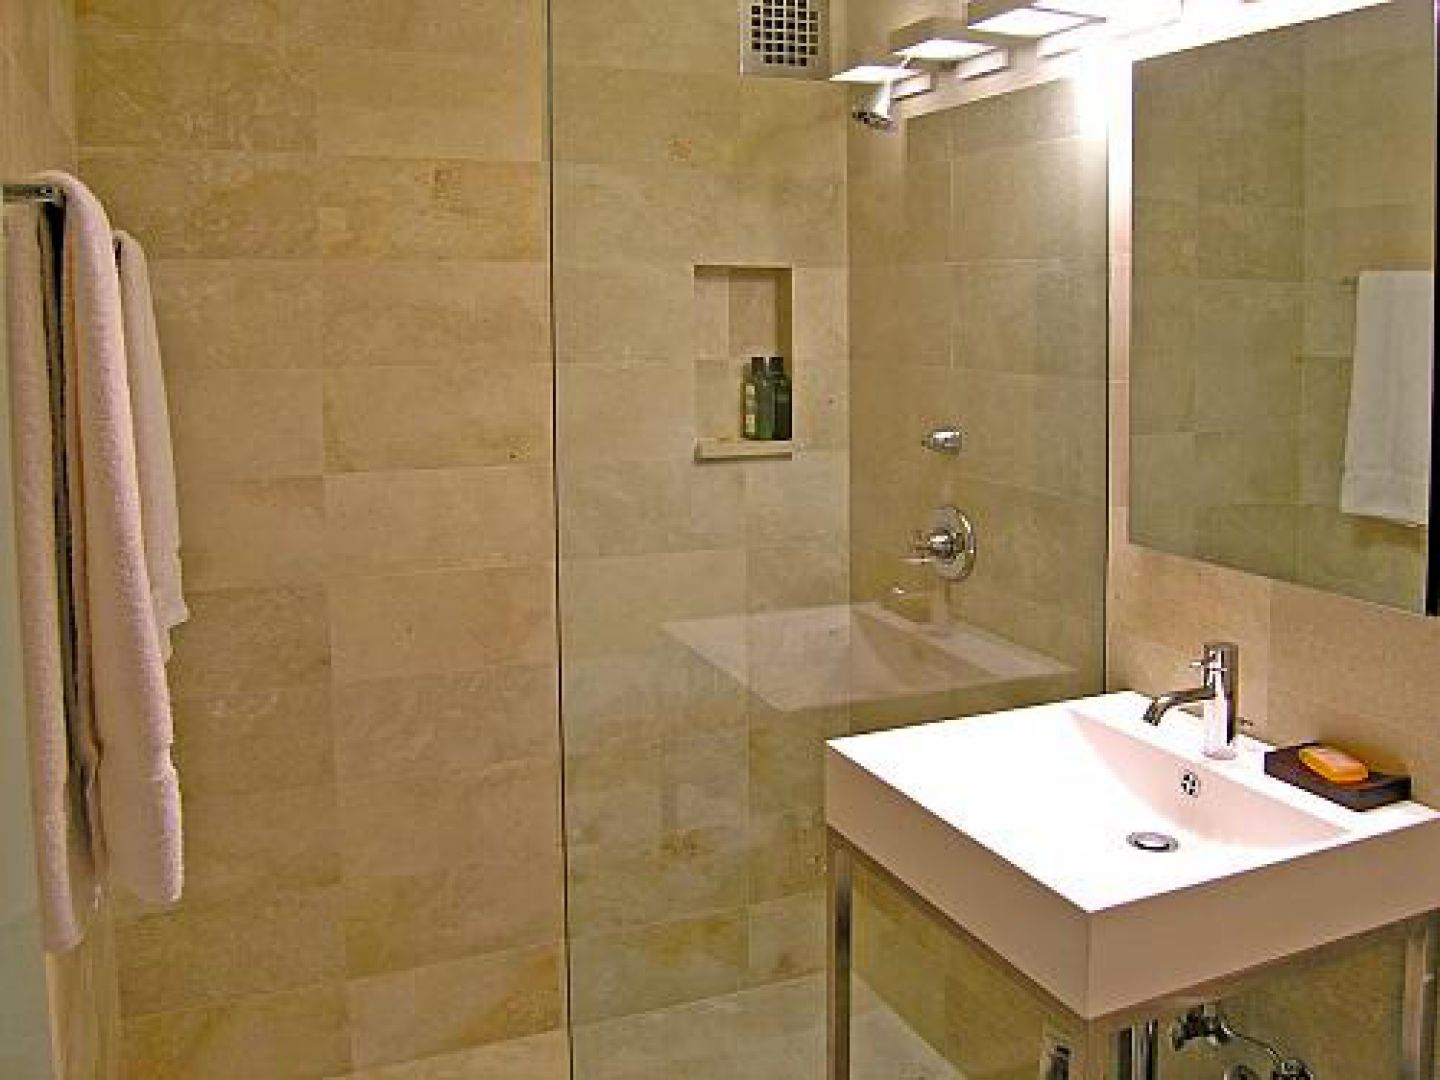 Incredible Shower Tile Designs Travertine Bathroom Decoration With Largest Home Design Picture Inspirations Pitcheantrous